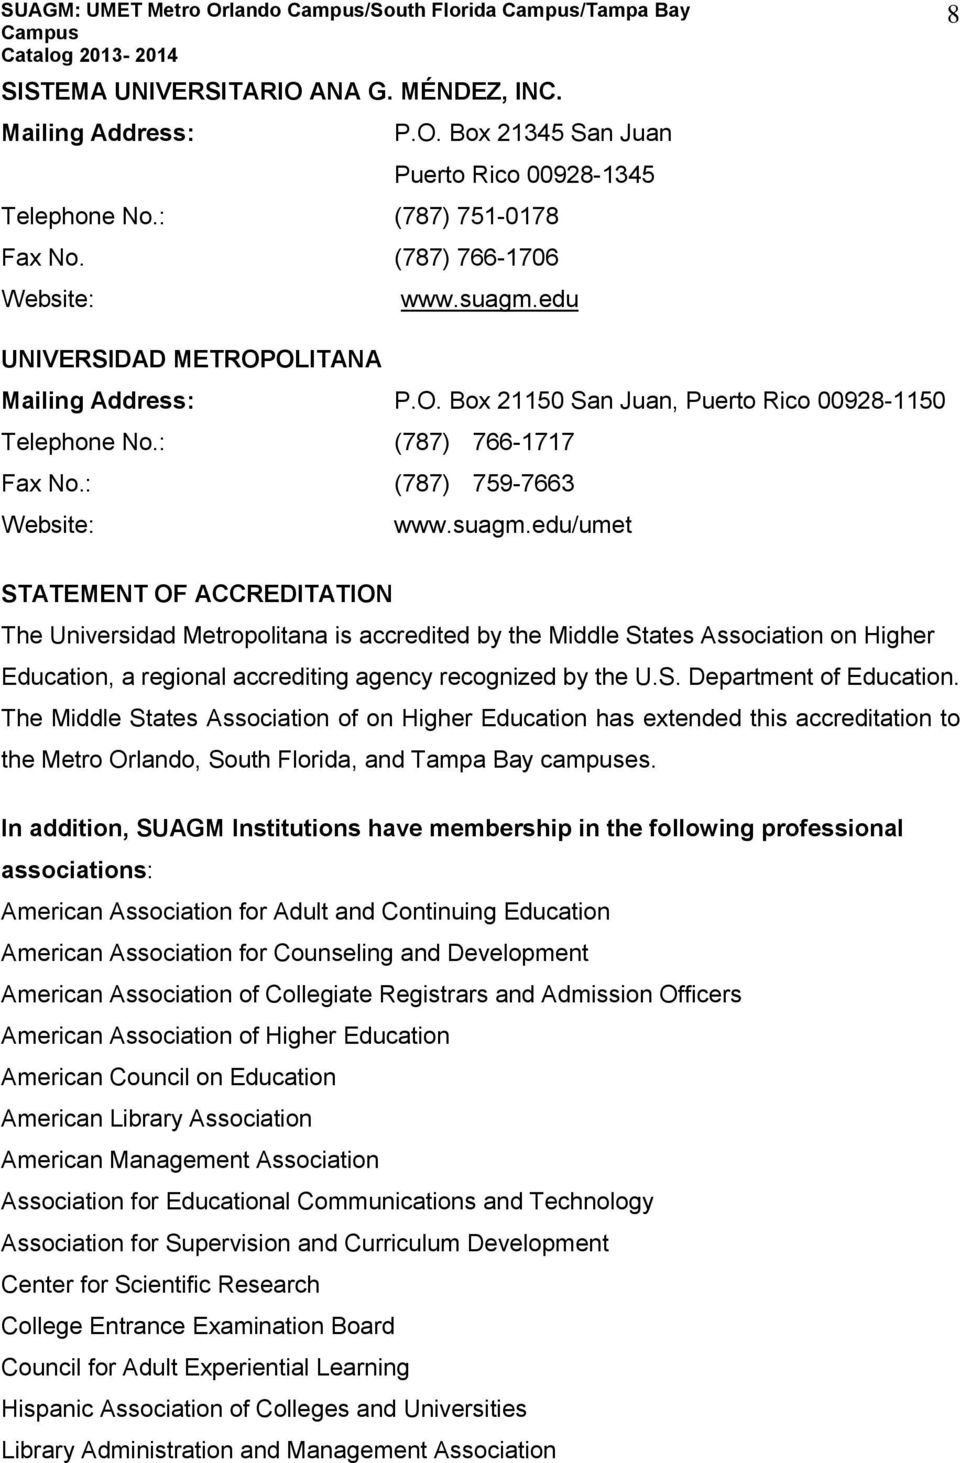 suagm.edu/umet STATEMENT OF ACCREDITATION The Universidad Metropolitana is accredited by the Middle States Association on Higher Education, a regional accrediting agency recognized by the U.S. Department of Education.